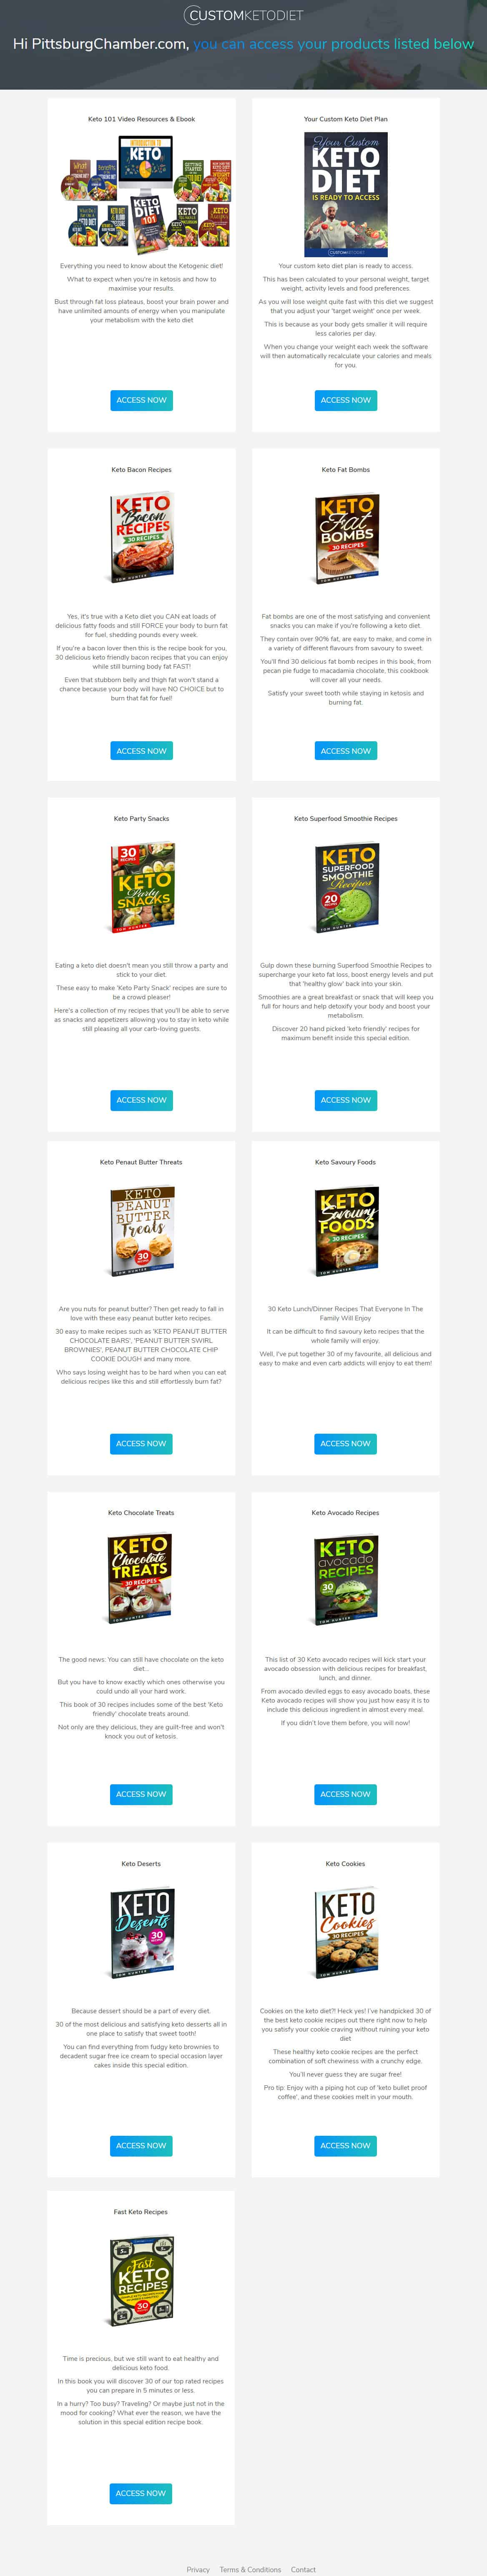 Custom Keto Diet Plan Coupon Codes Online 2020